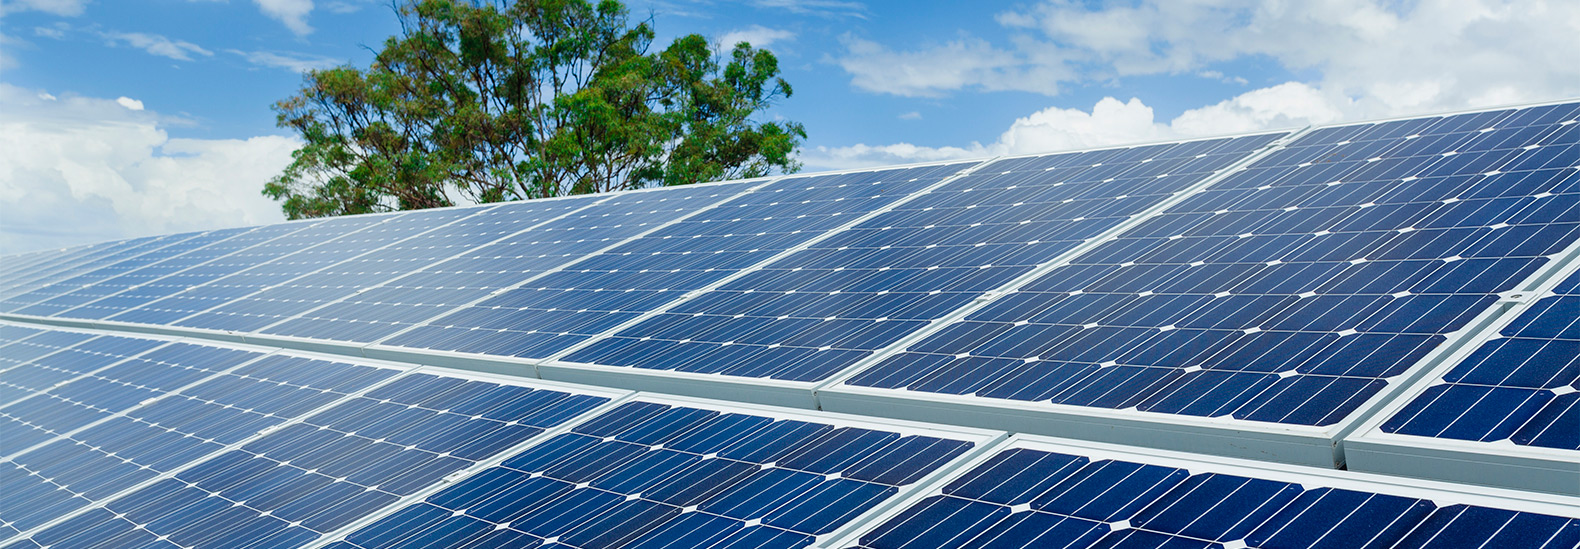 India Added More Rooftop Solar In 2017 Than The Past 4